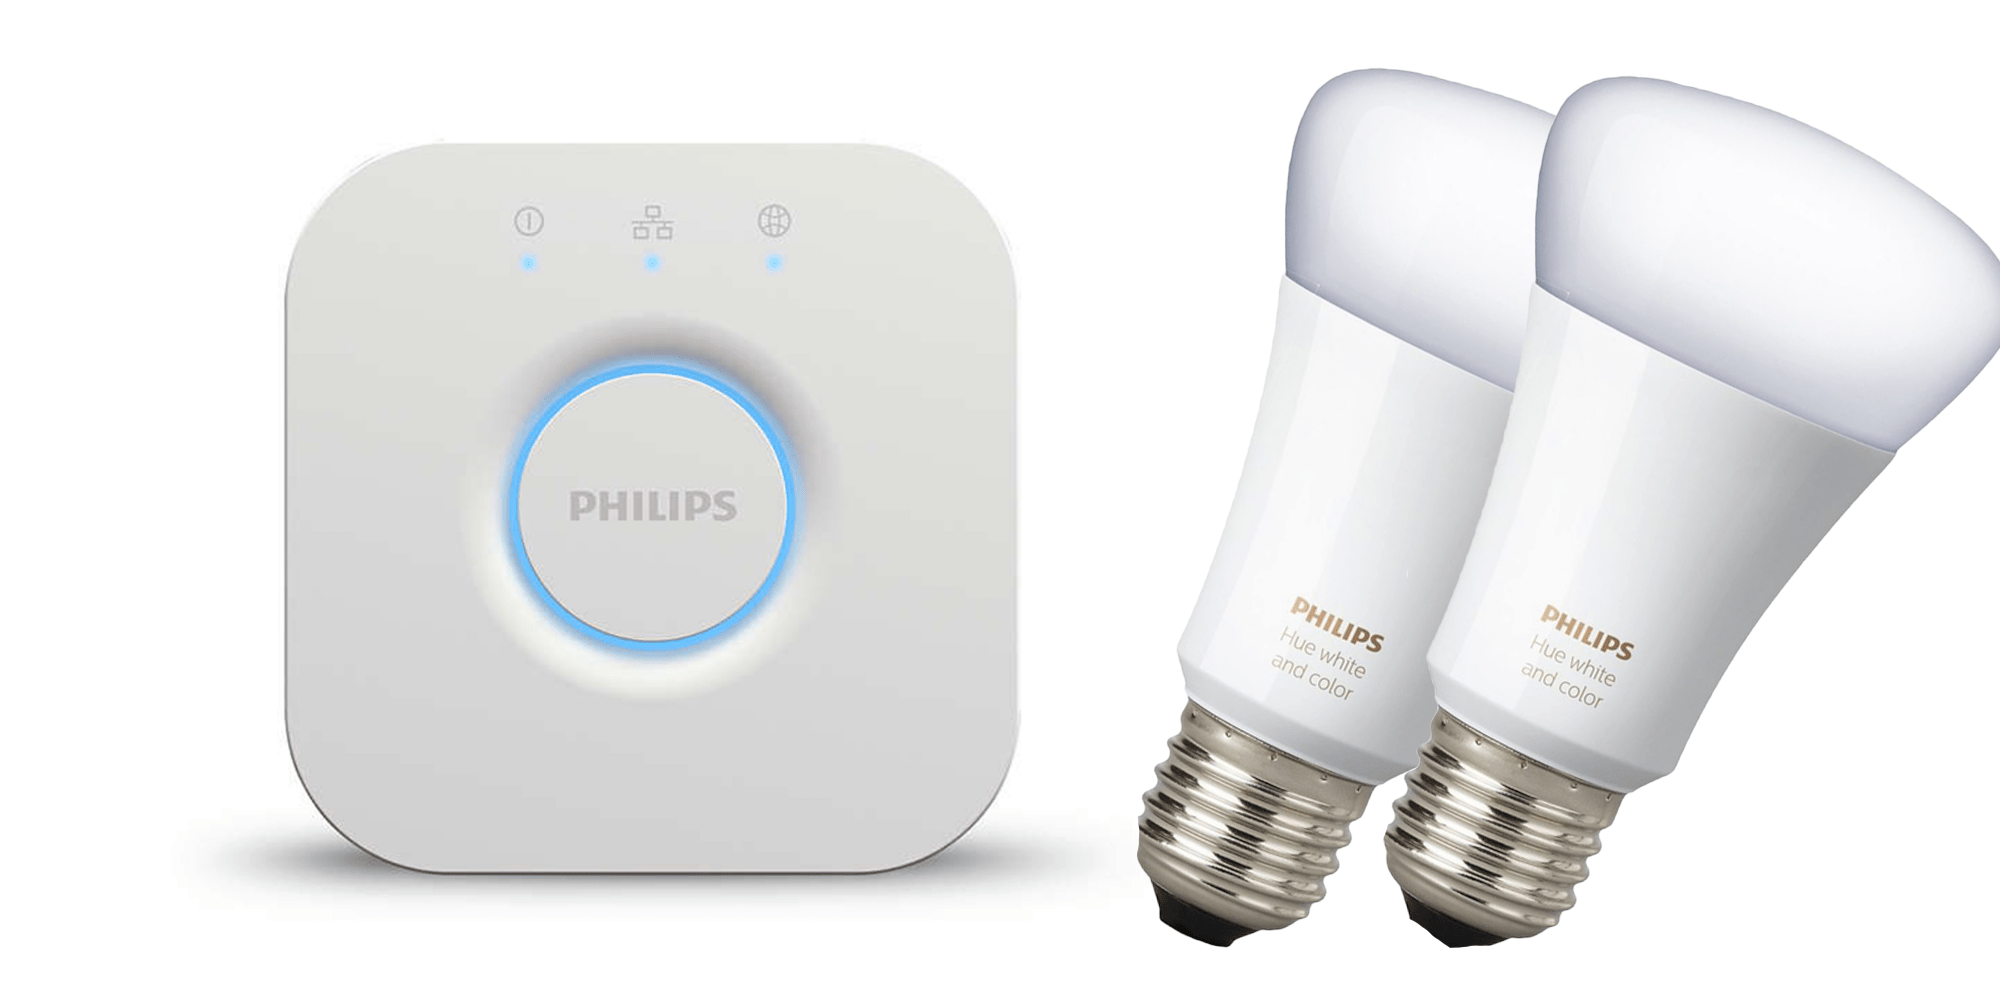 Philips Hue Bridge Homekit Philips Hue Color Starter Kit Includes Two Led Bulbs And The